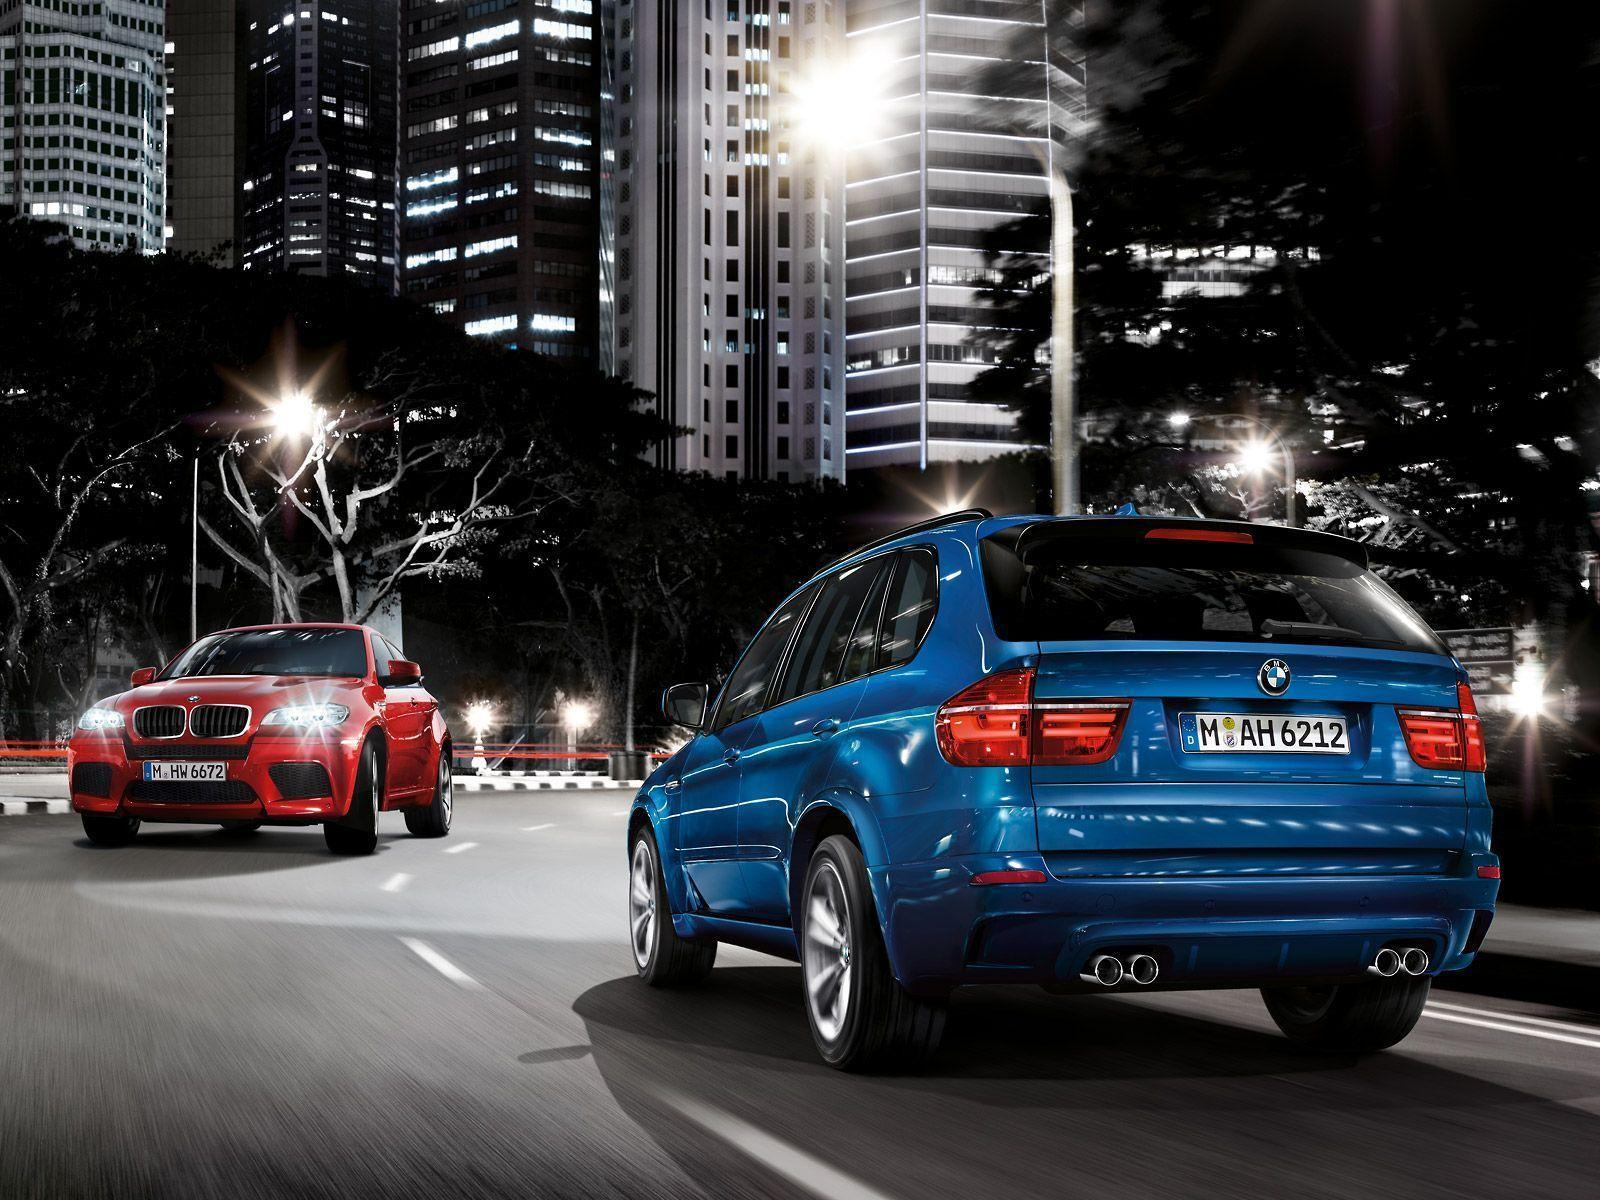 Bmw x5 m Wallpapers Widescreen